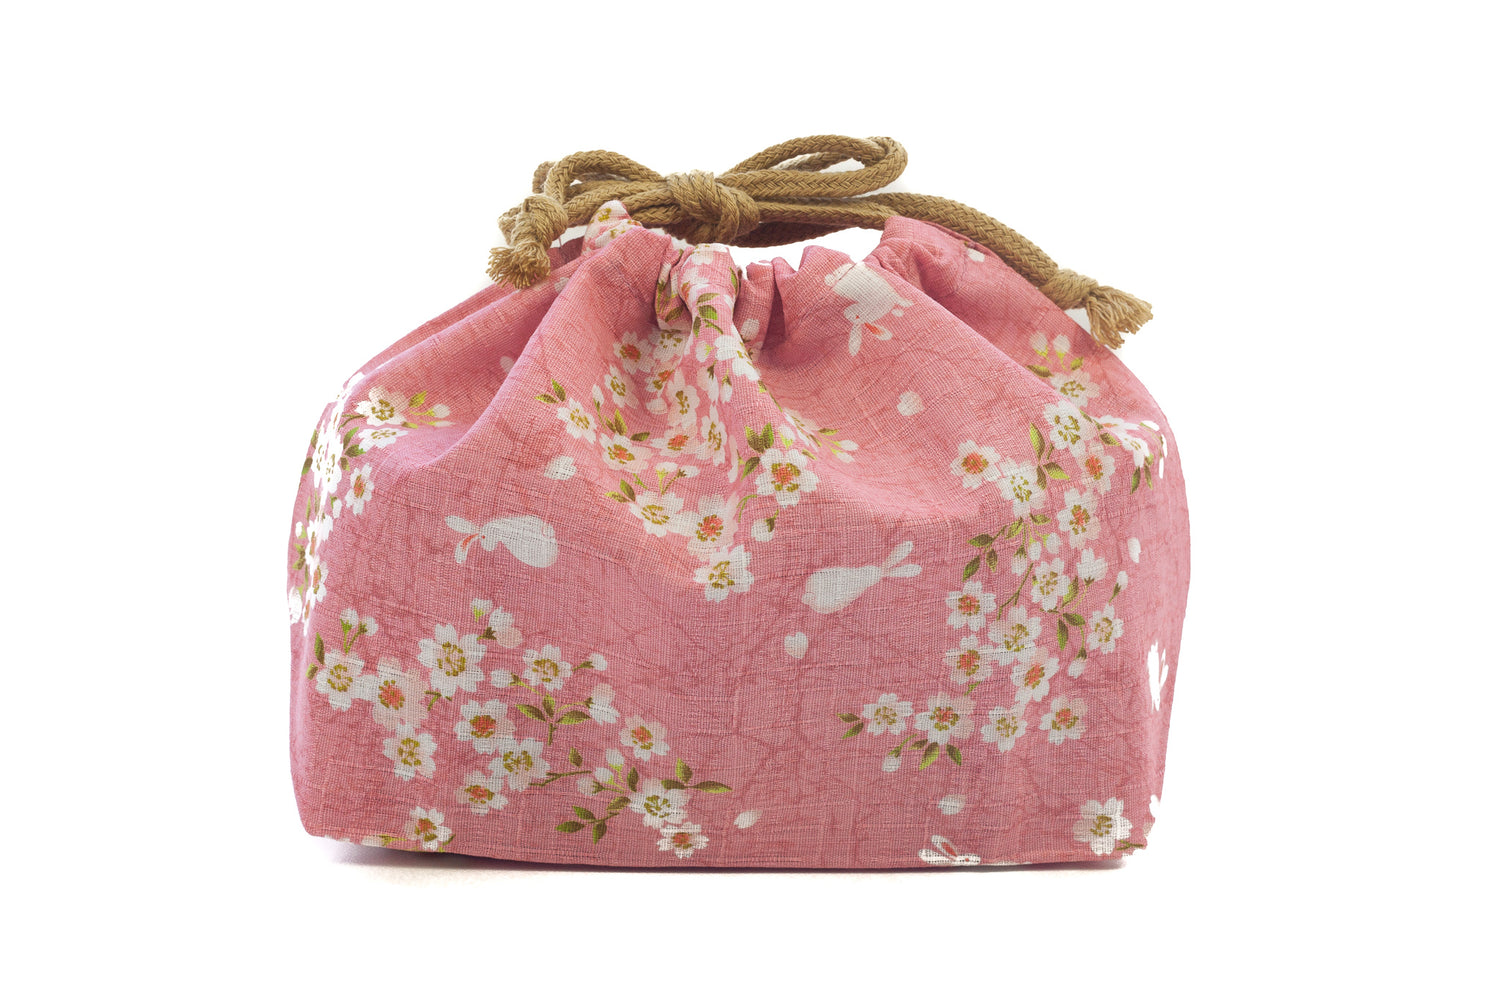 Sakura Rabbit Bento Bag | Pink